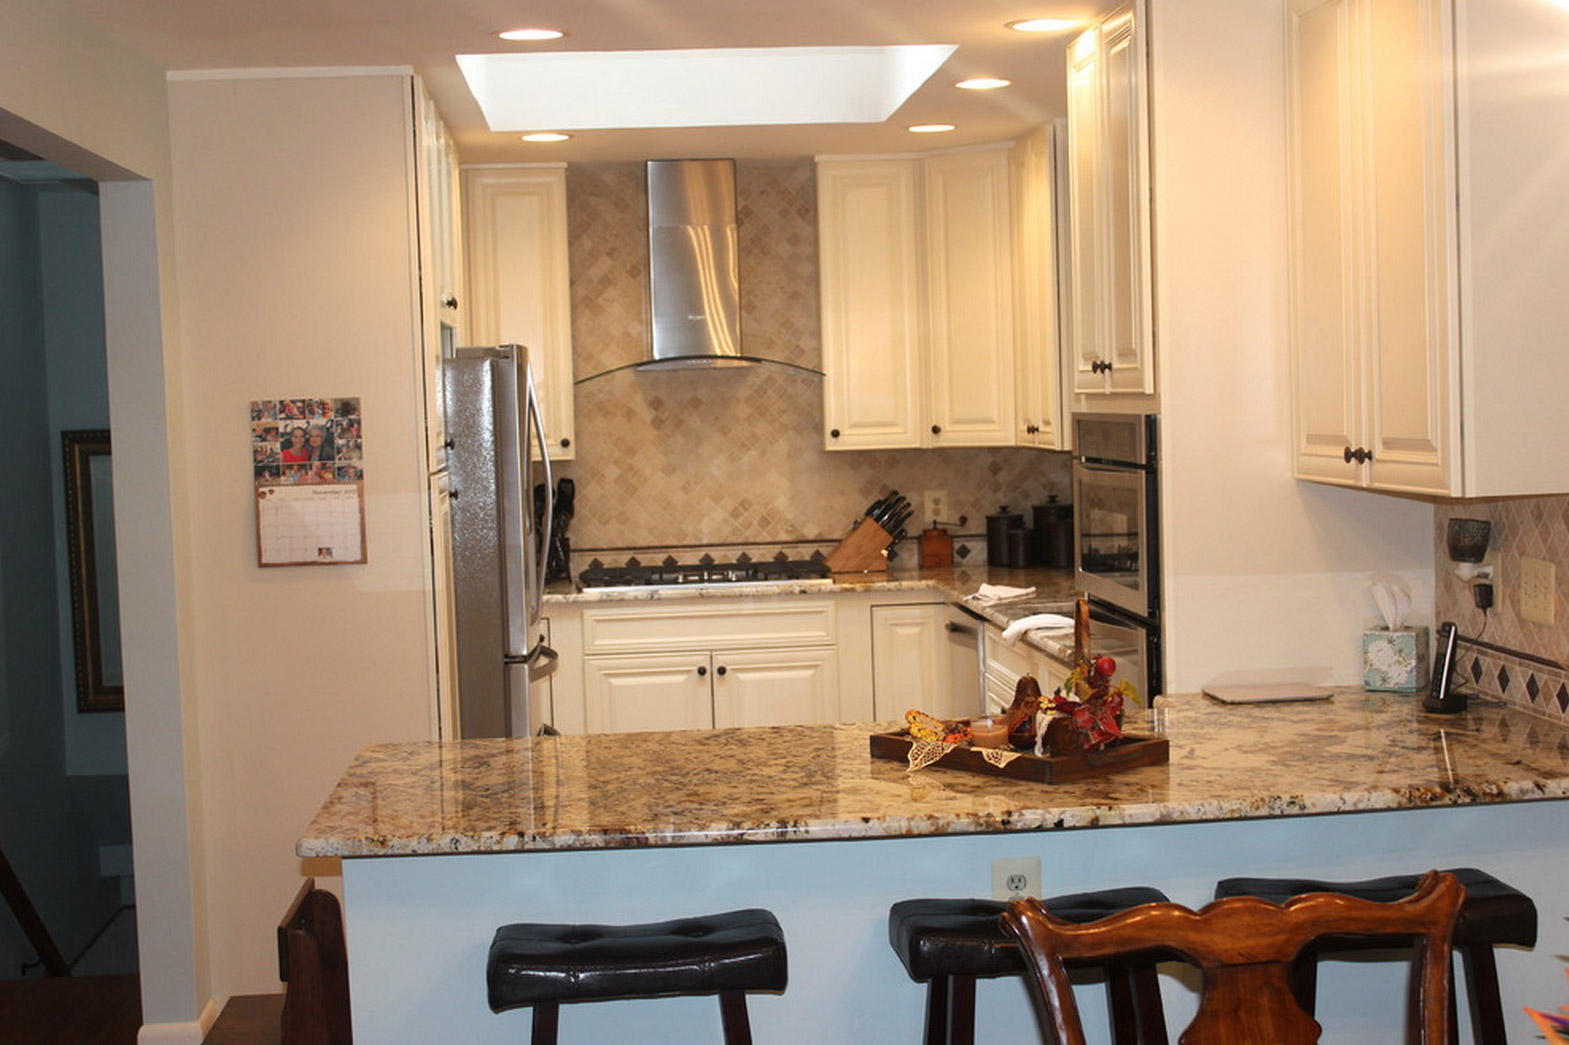 kitchen remodeling northern va modest with image of kitchen remodeling design new in ideas